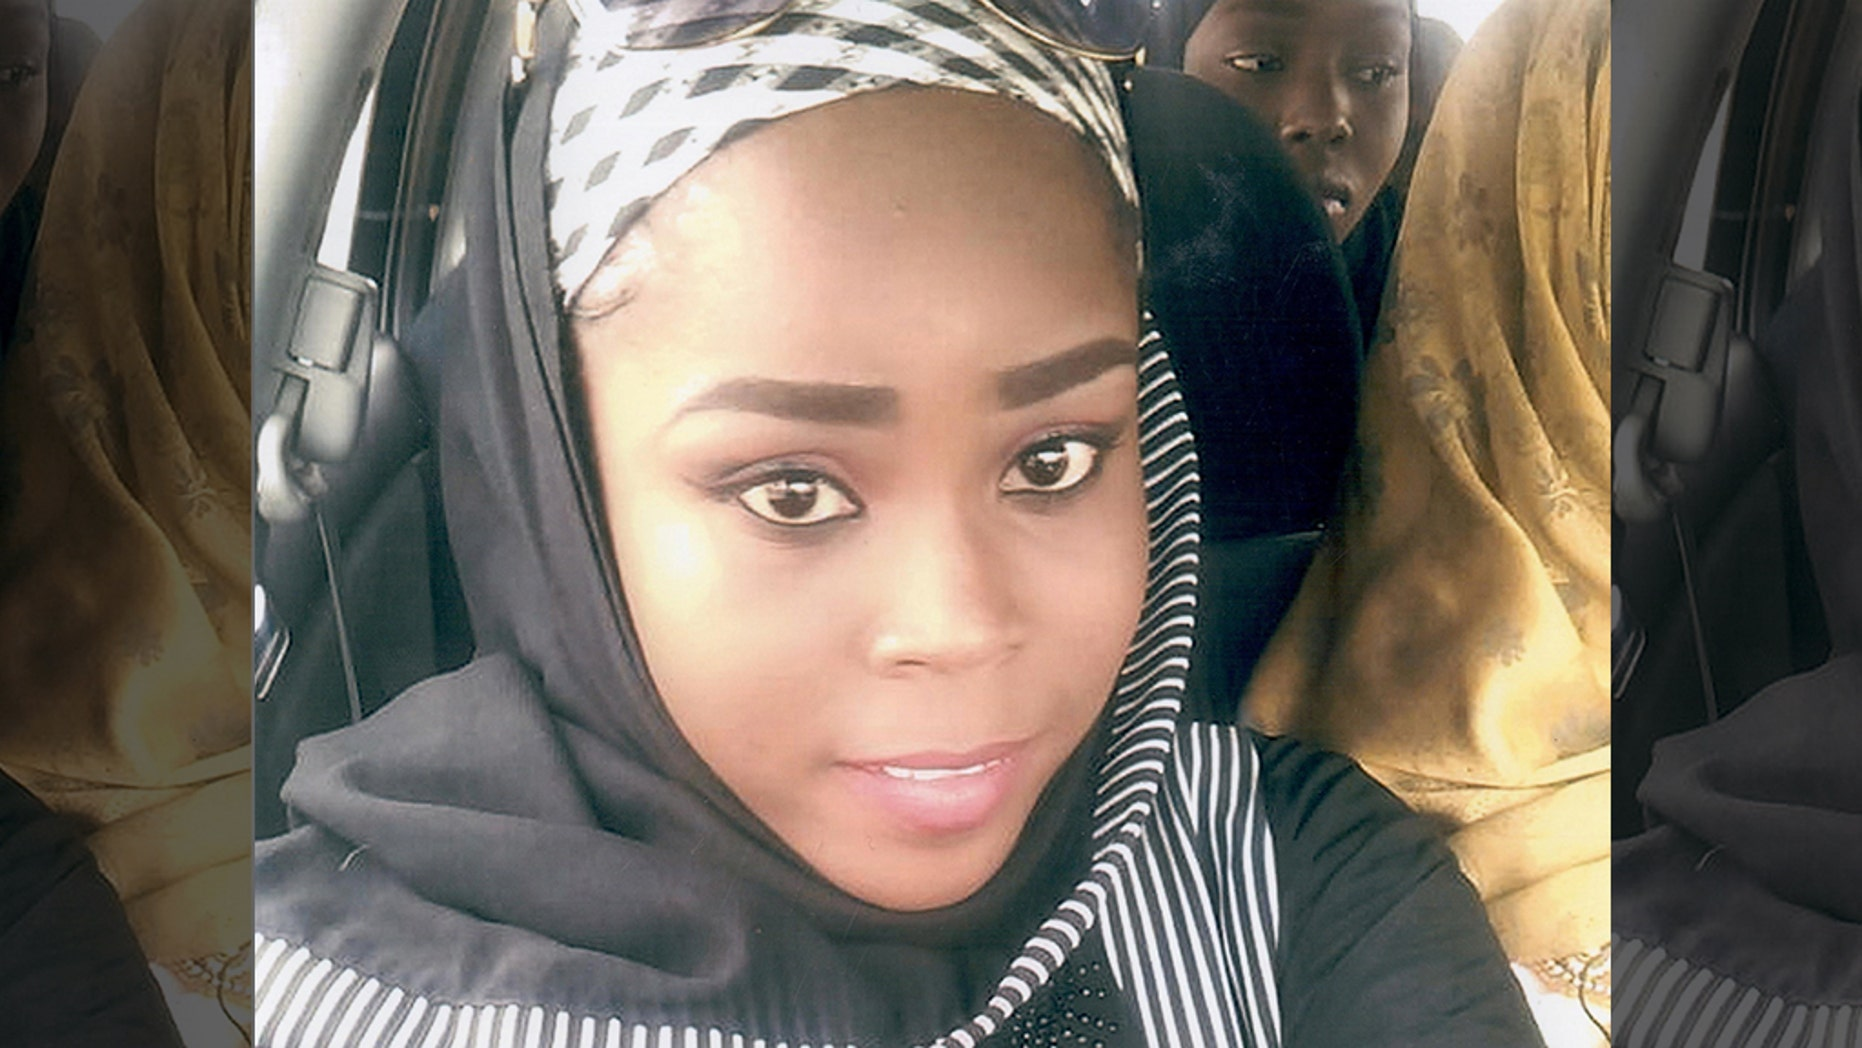 Red Cross 'heartbroken' over killing of aid worker by Boko Haram